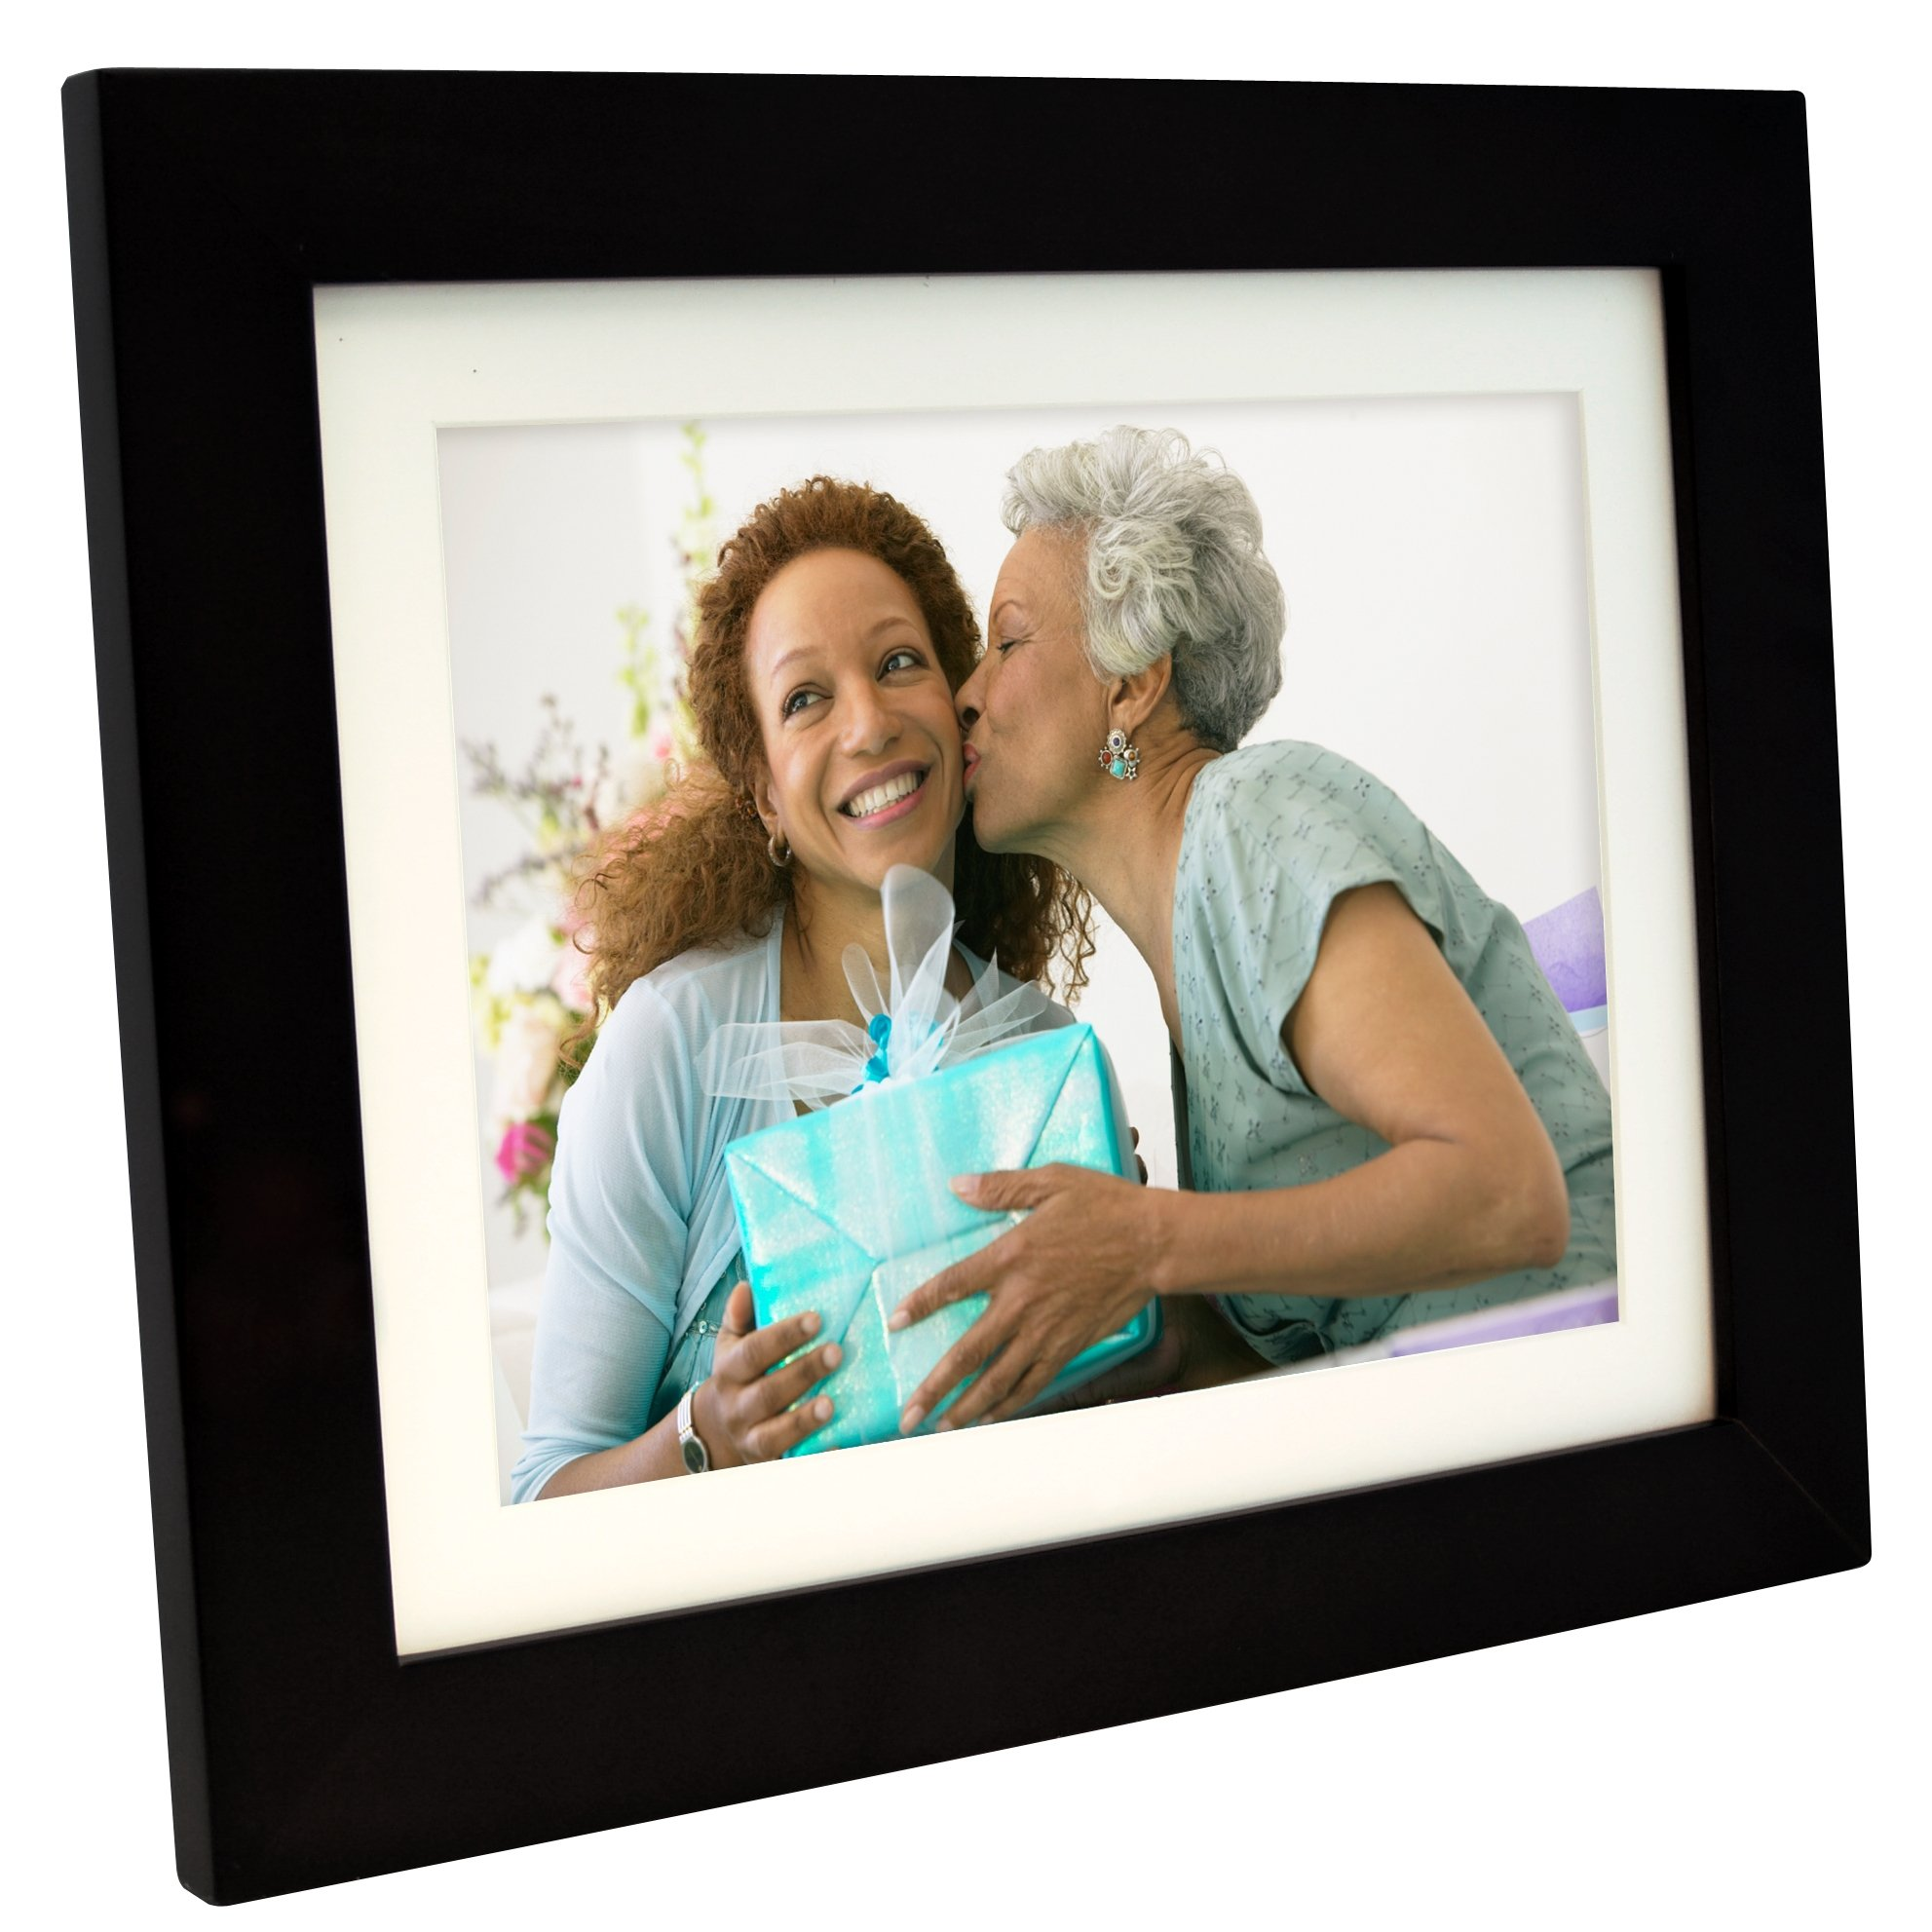 Pandigital PI1056DW 10.4-Inch Digital Picture Frame with 2 Interchangeable and Espresso Frame - 1GB